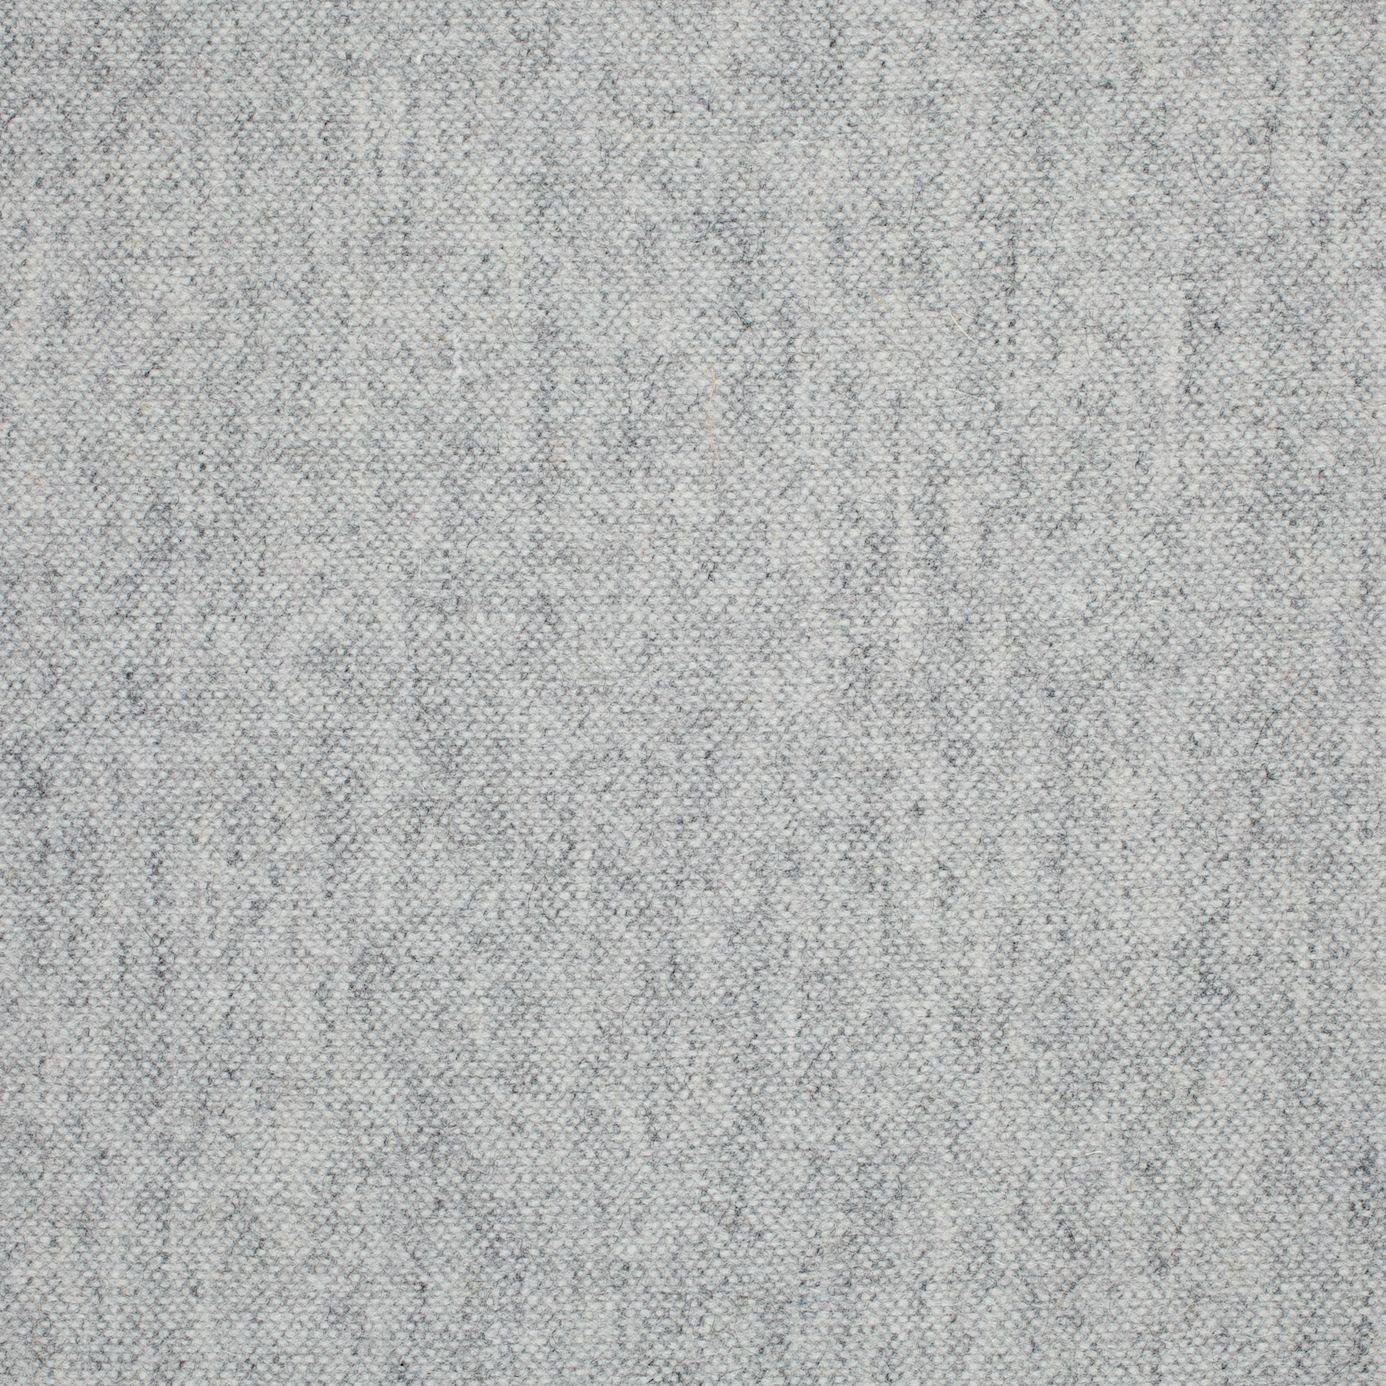 Roman Blinds In Hue Fabric Dove Grey 130719